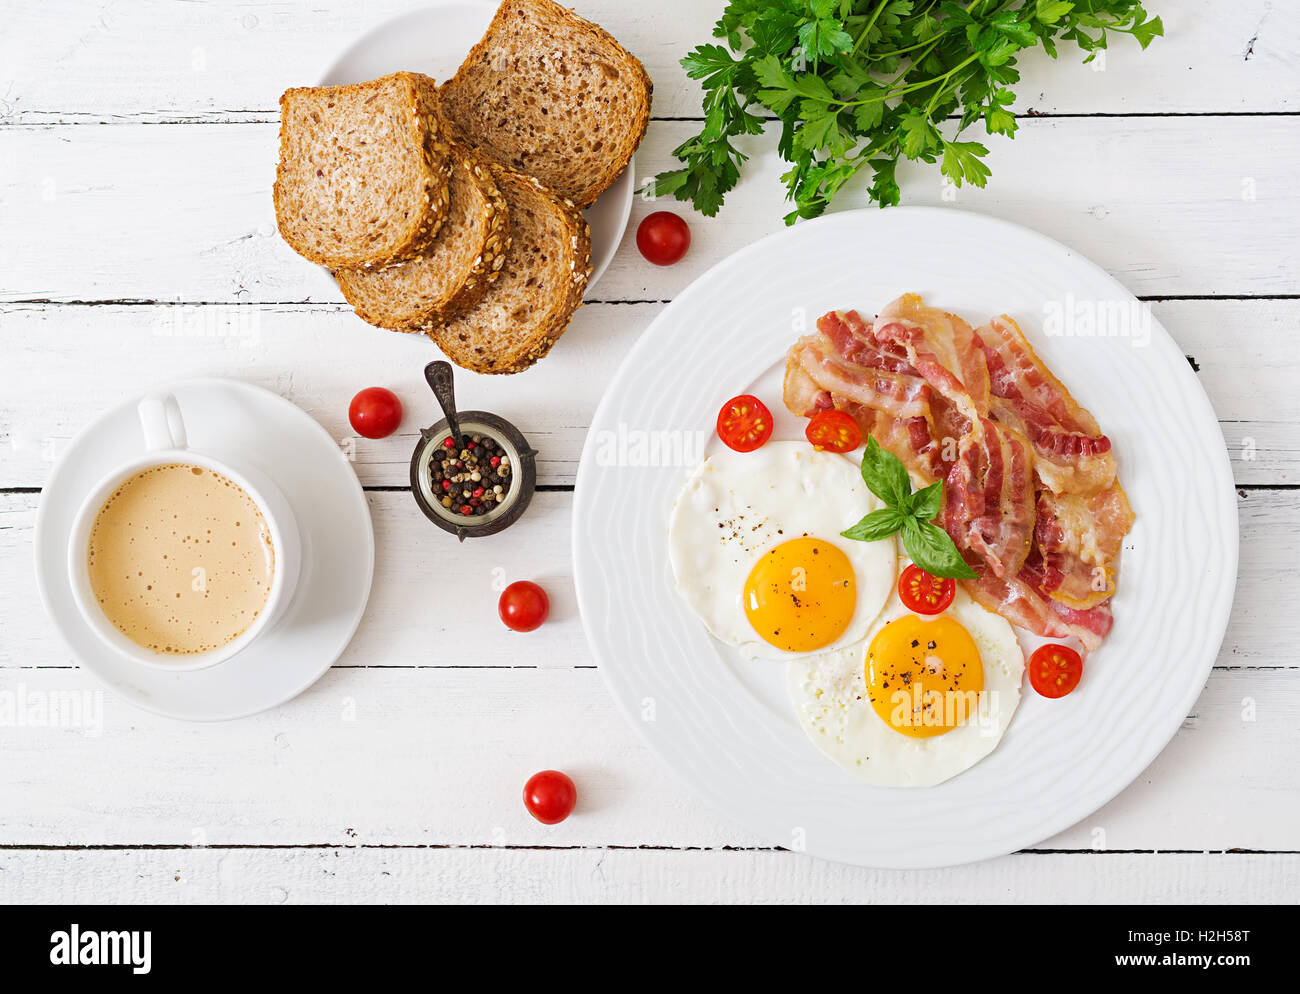 English breakfast - fried egg, tomatoes and bacon. Top view. - Stock Image